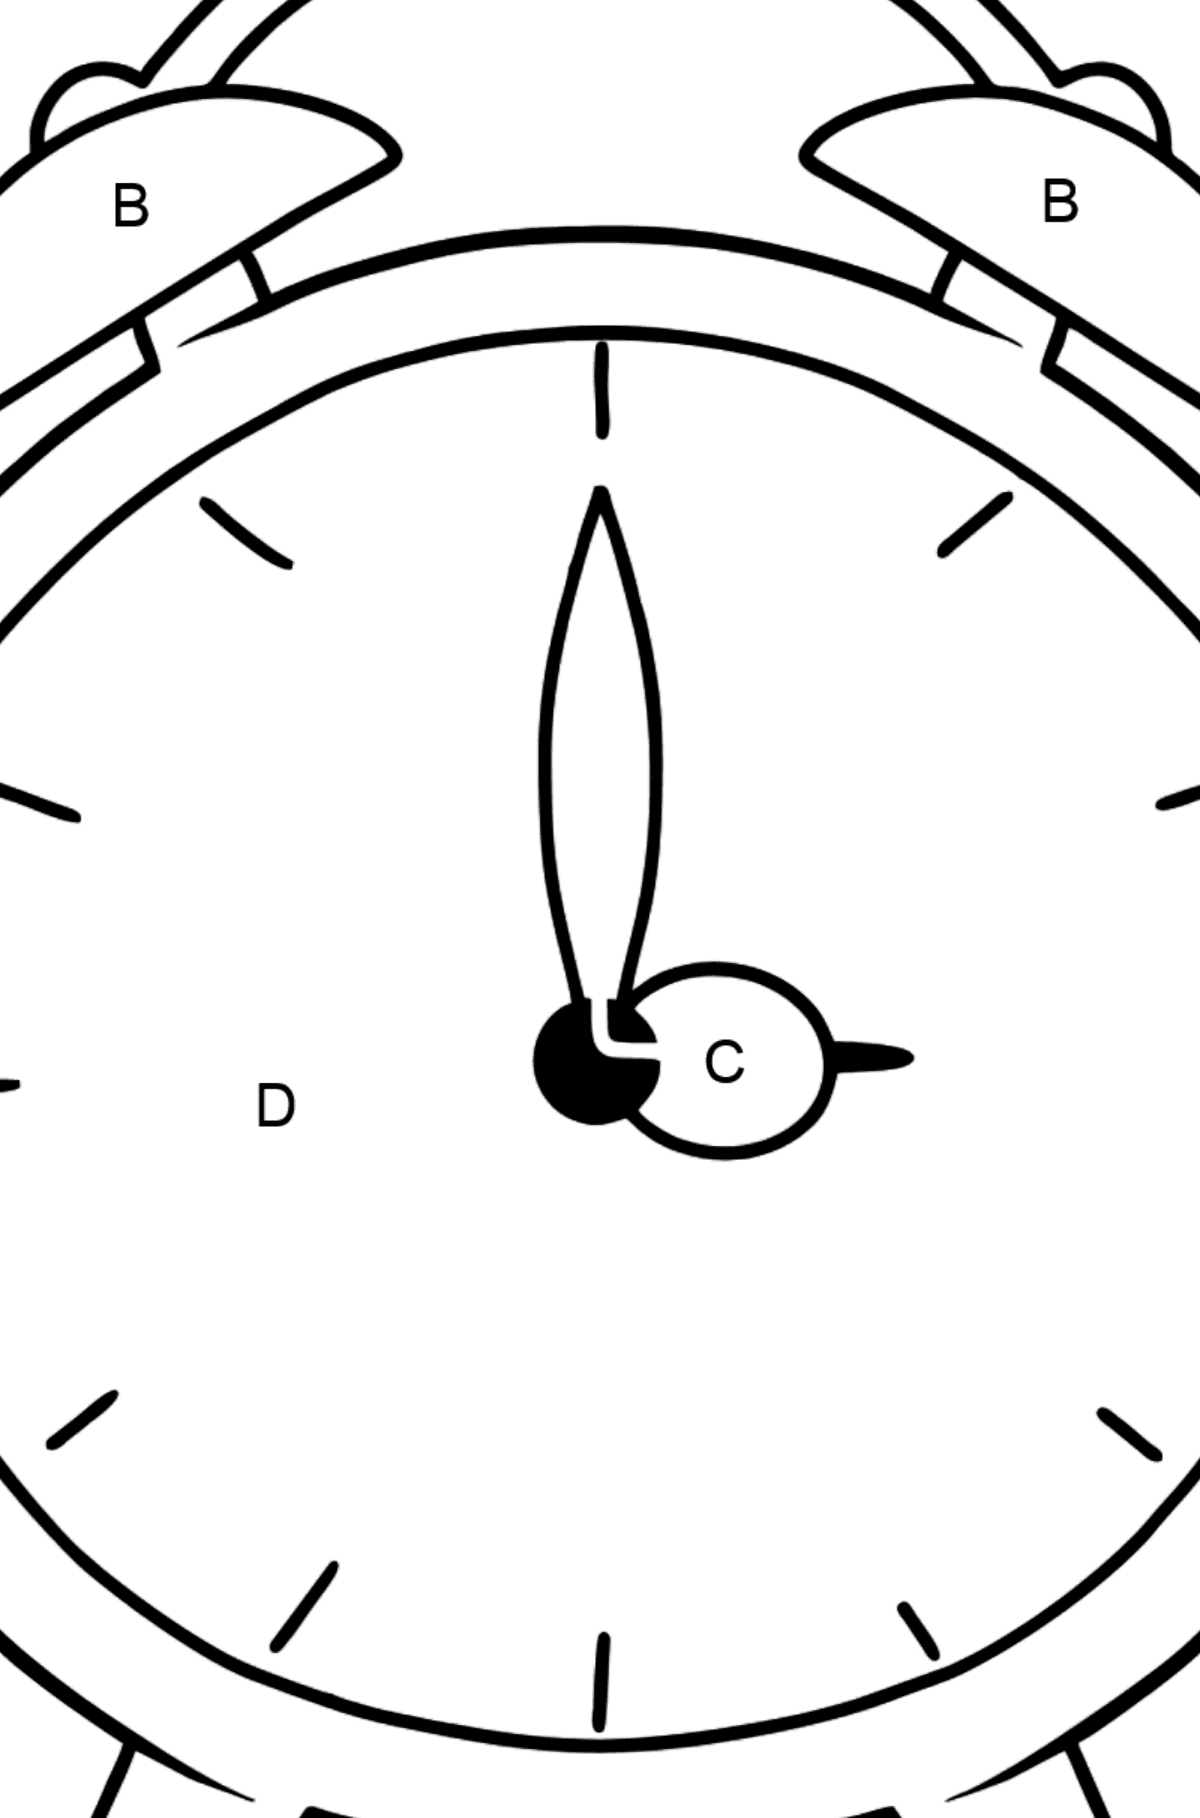 Alarm Clock coloring page - Coloring by Letters for Kids